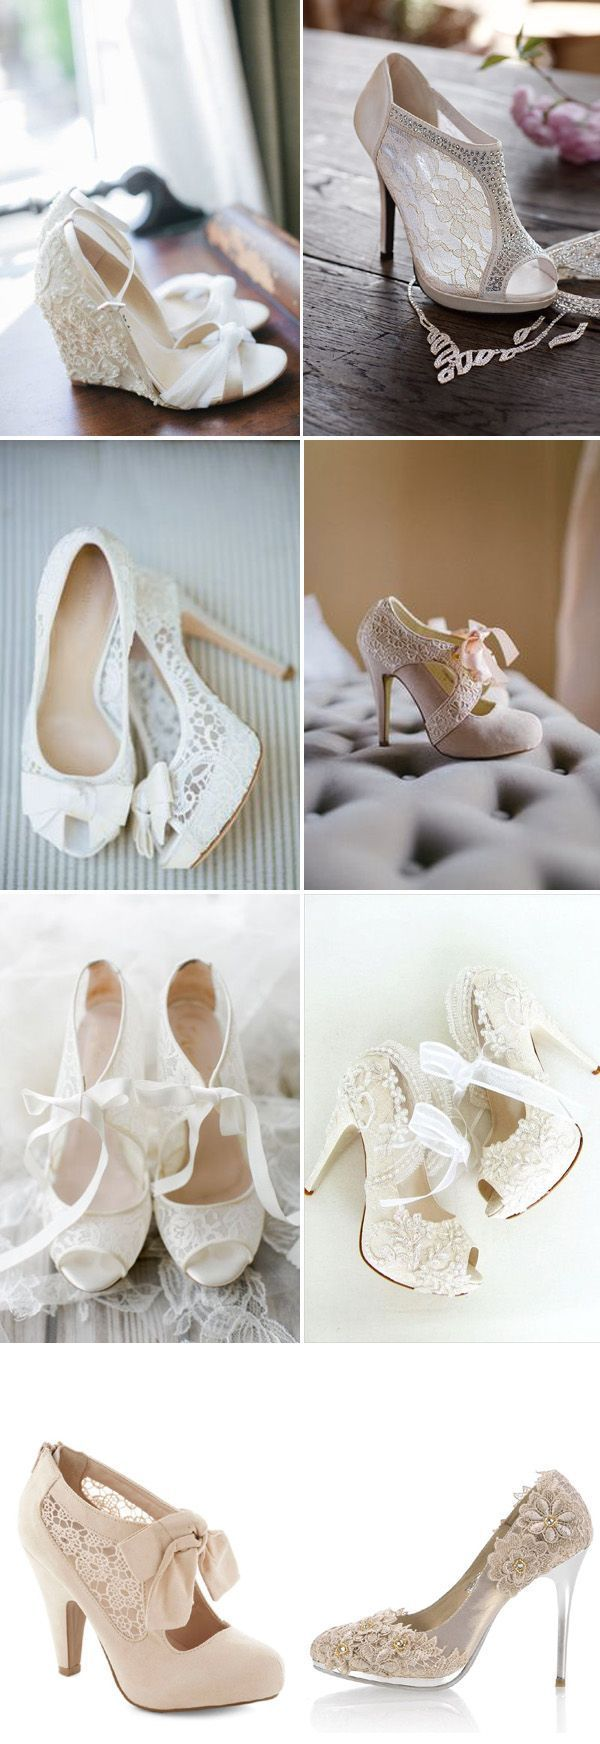 43 Most Wanted Wedding Shoes for Bride | http://www.deerpearlflowers.com/most-wanted-wedding-shoes-for-bride/ (scheduled via http://www.tailwindapp.com?utm_source=pinterest&utm_medium=twpin&utm_content=post7848440&utm_campaign=scheduler_attribution)